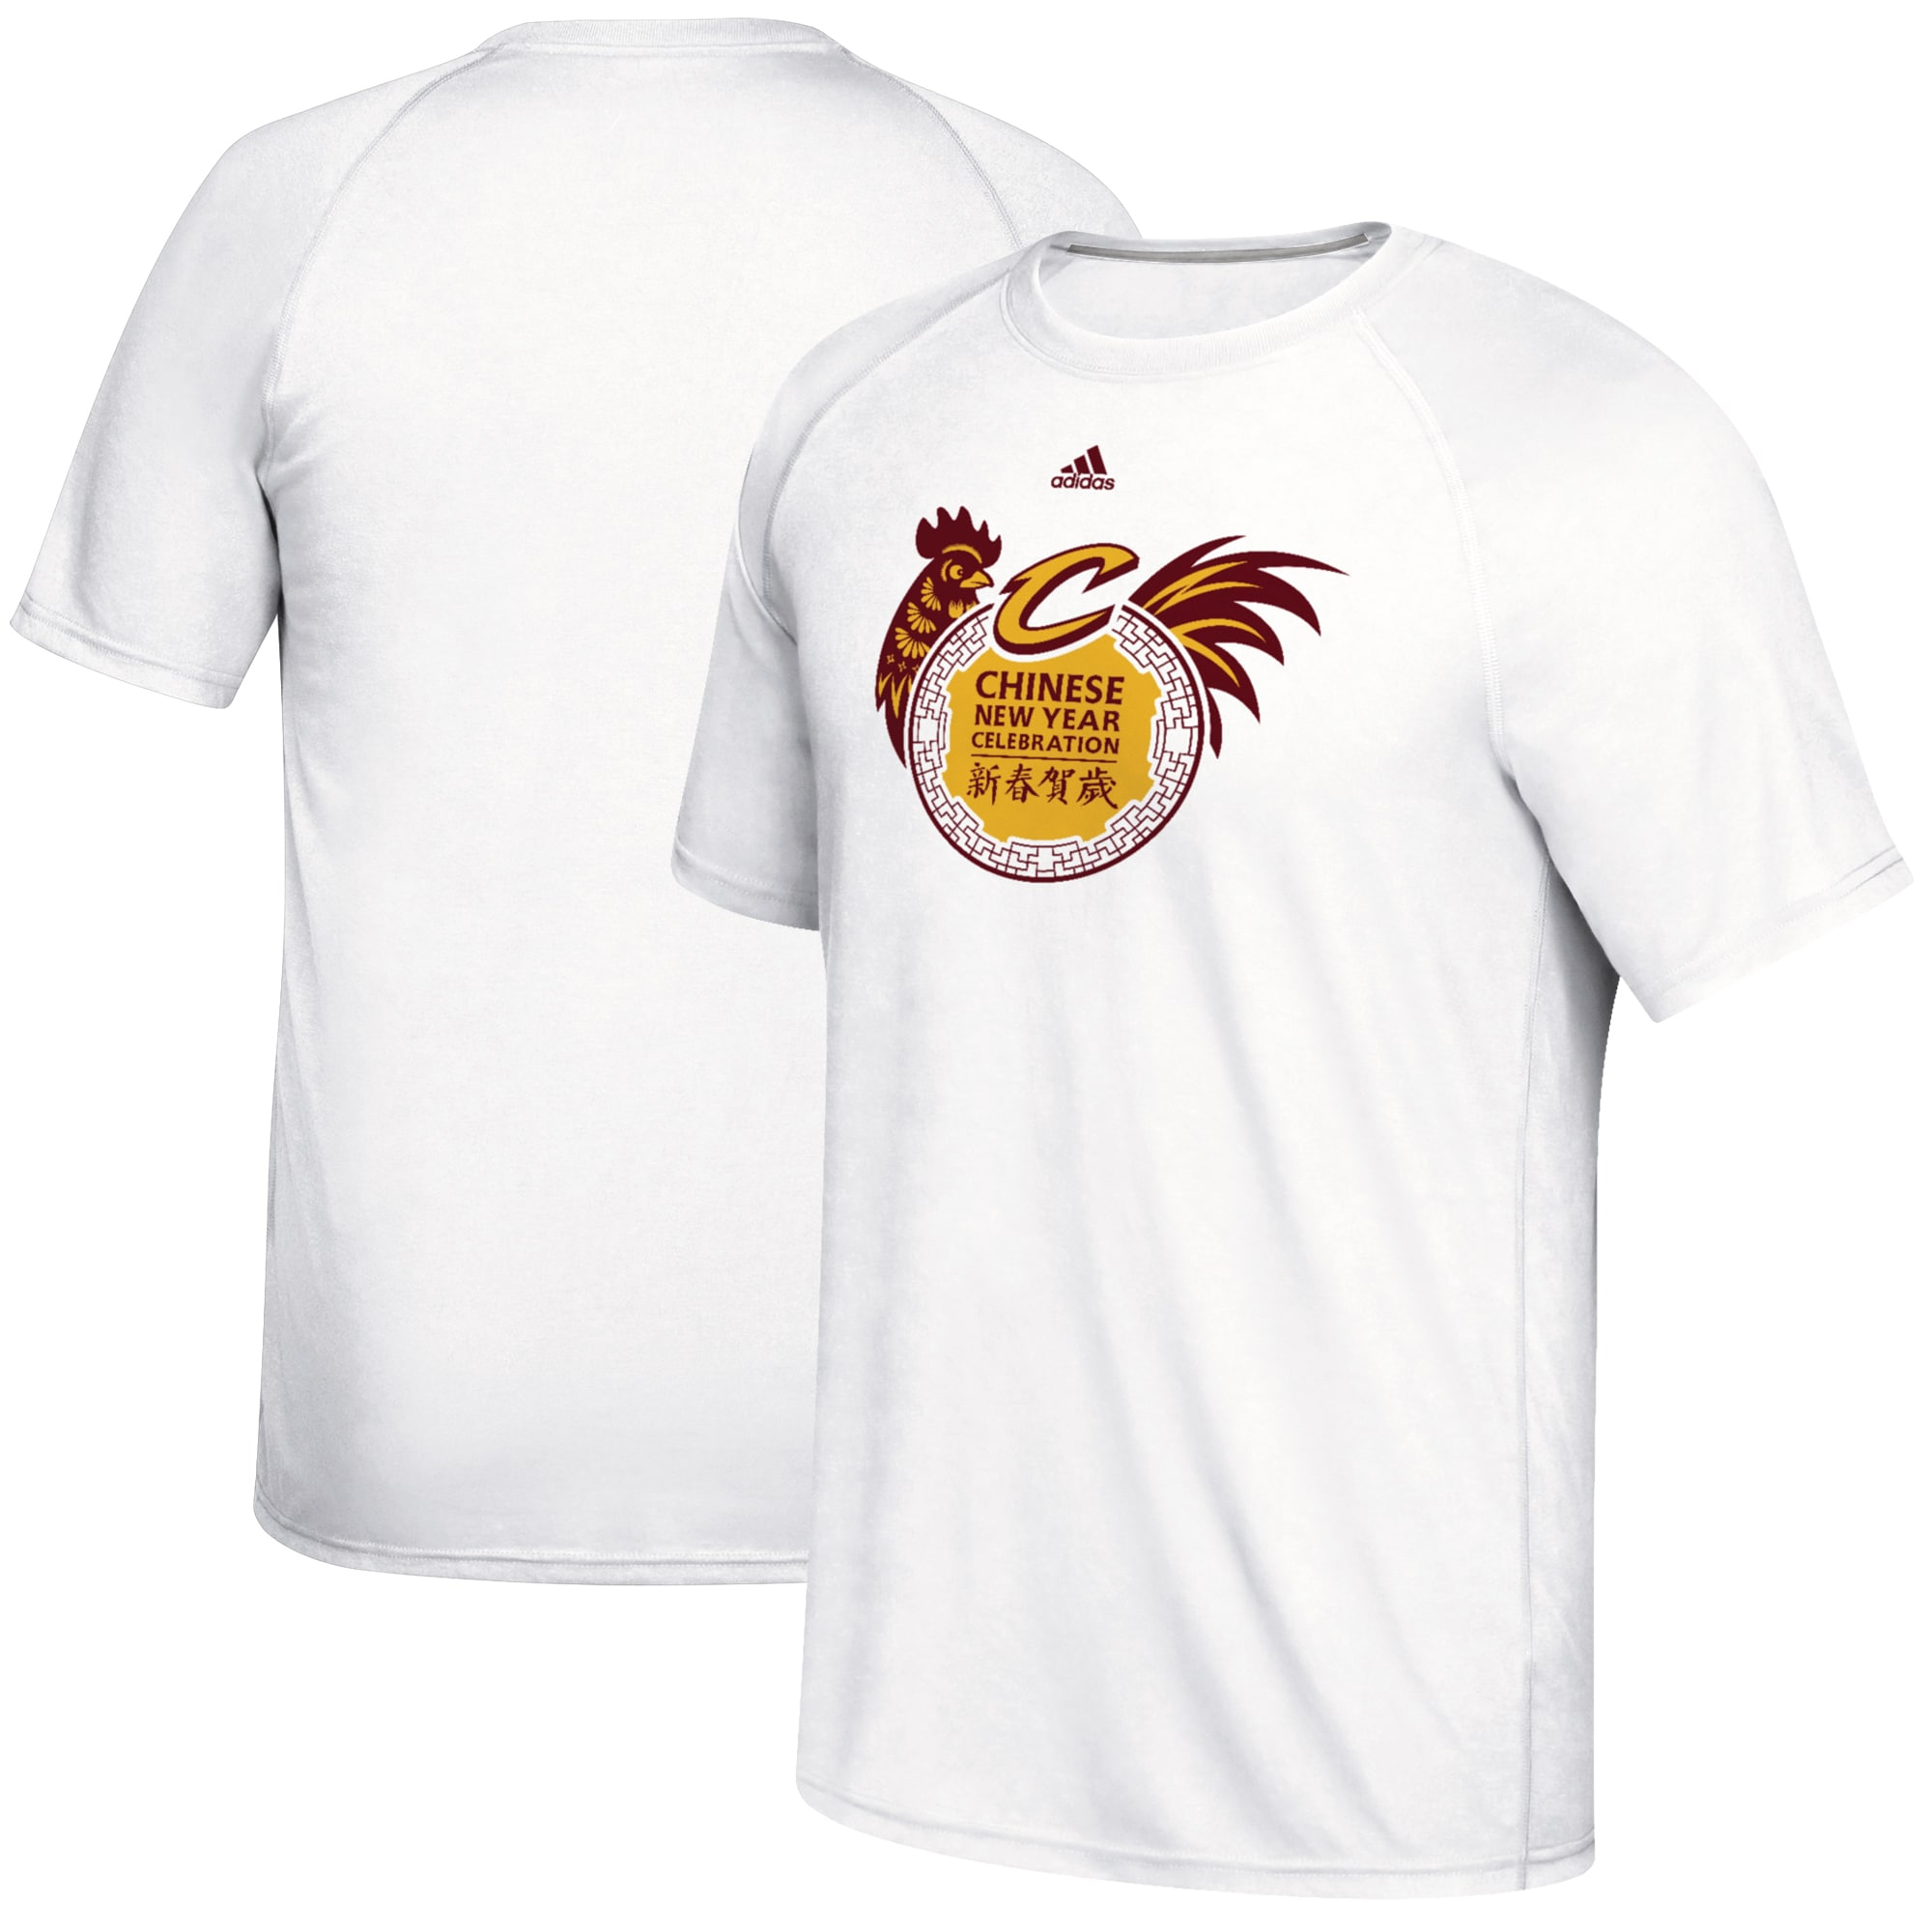 Cleveland Cavaliers adidas 2017 Chinese New Year climalite Ultimate T-Shirt - White